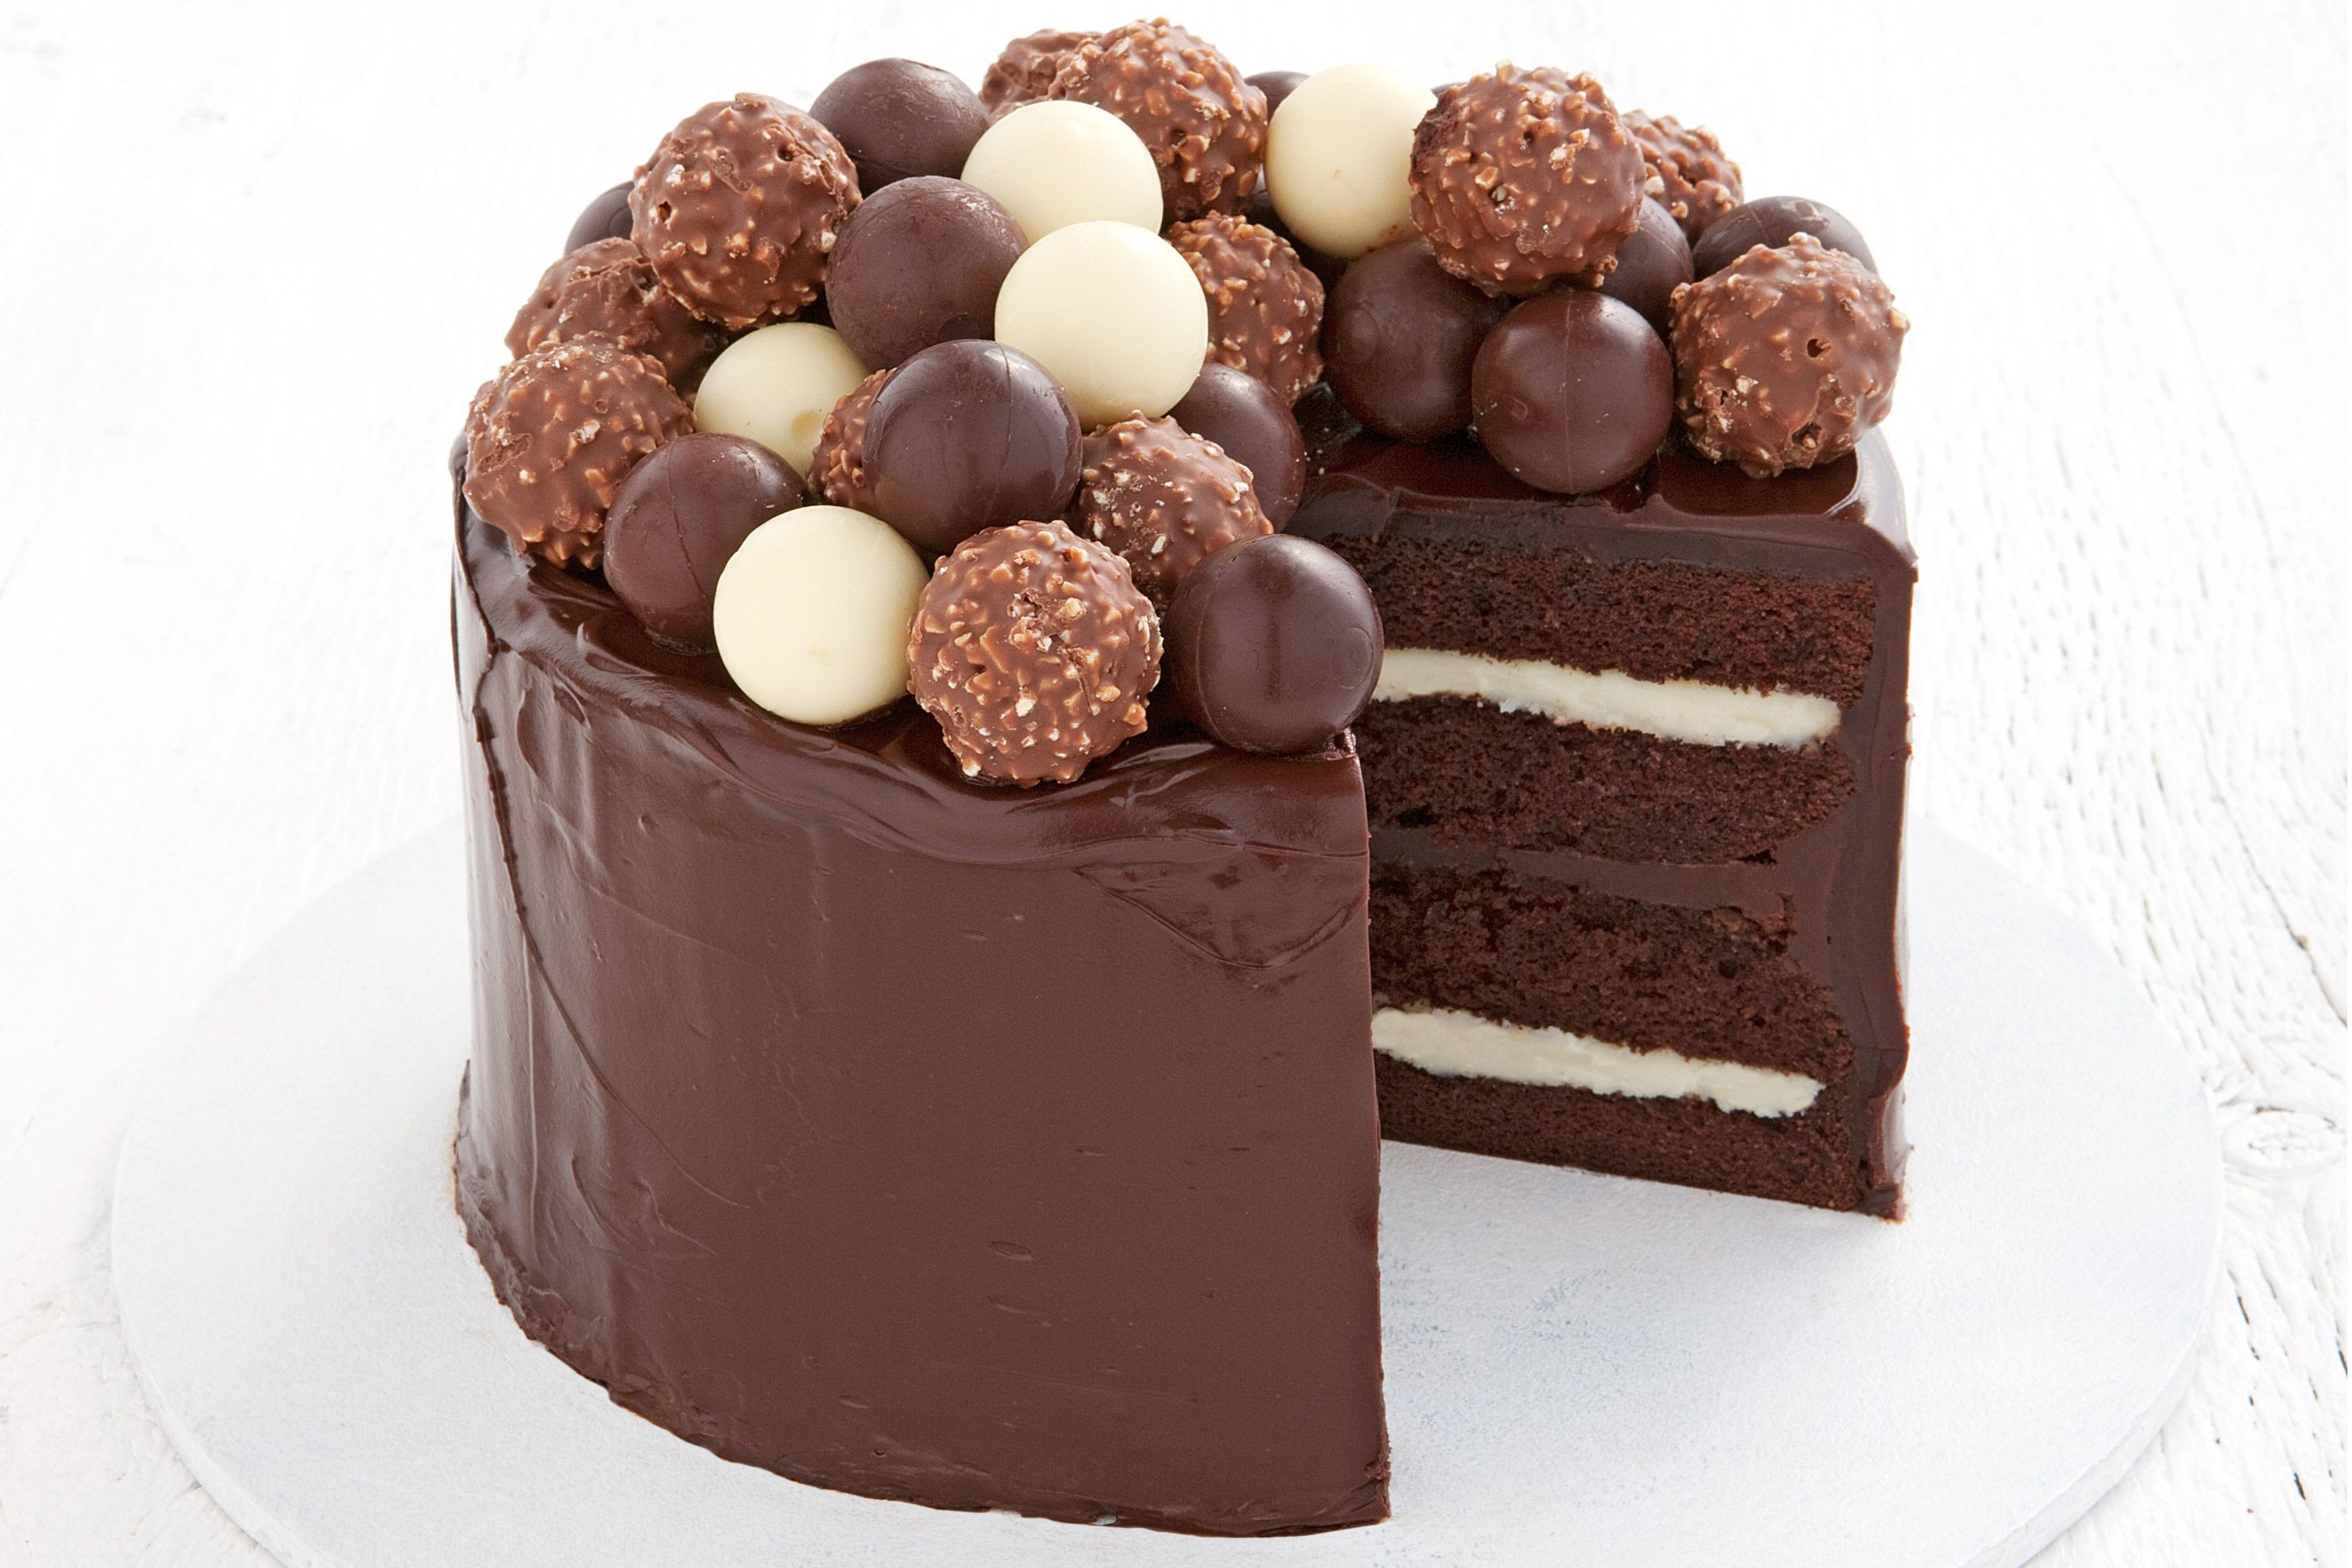 chocolate-celebration-cake-85607-1